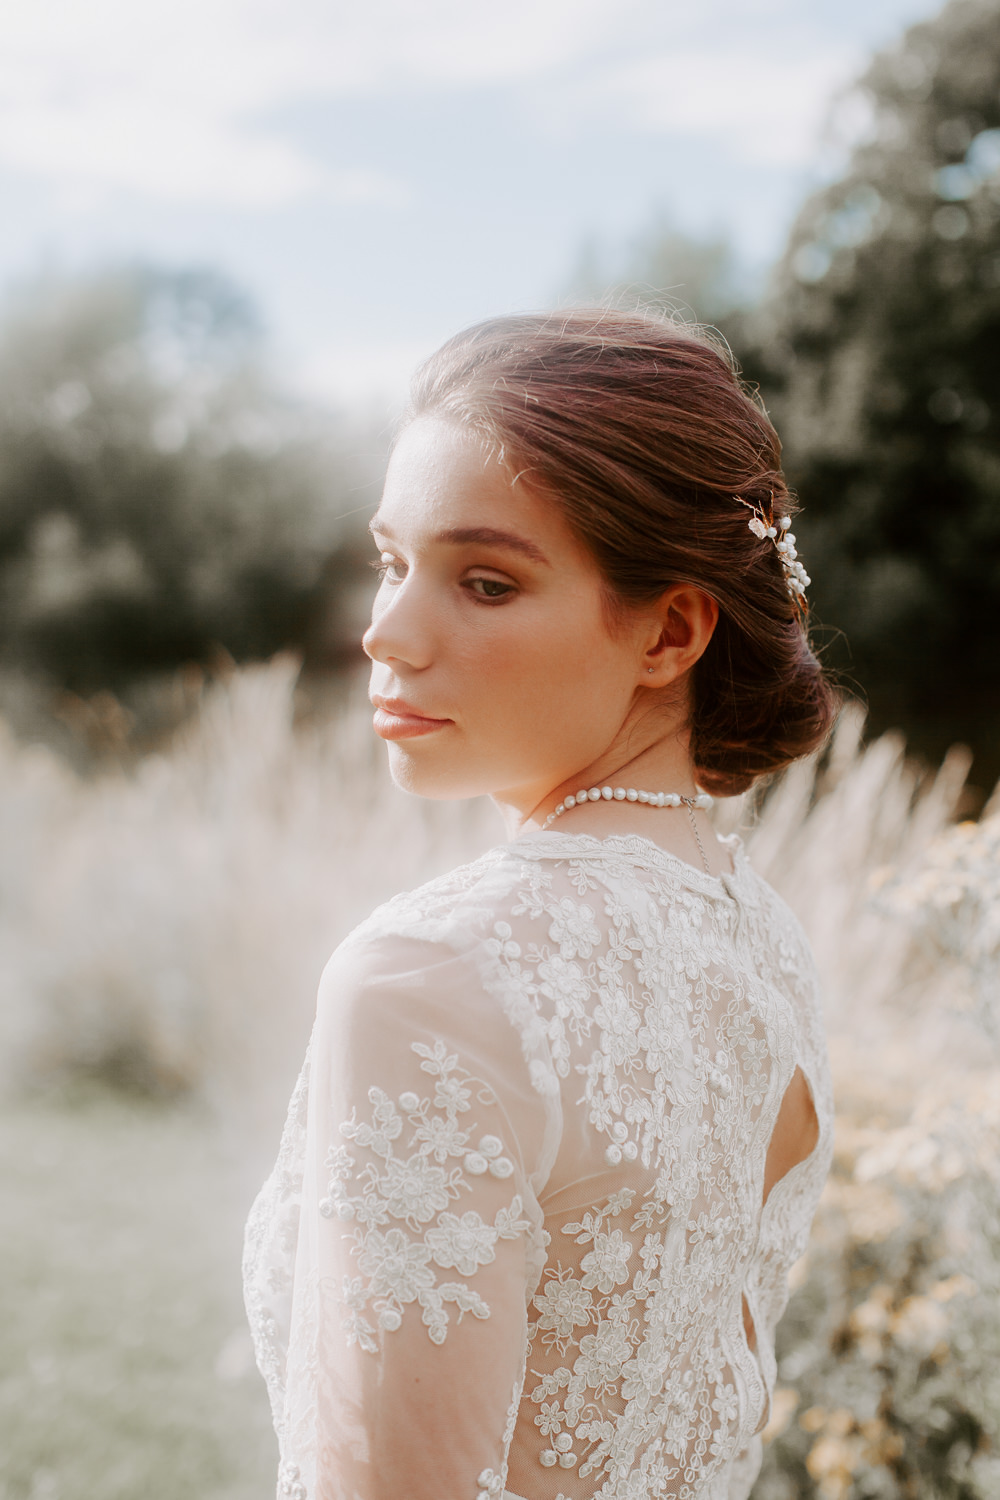 Whimsical Wedding Ideas Charlotte Lucy Photography Bride Bridal Make Up